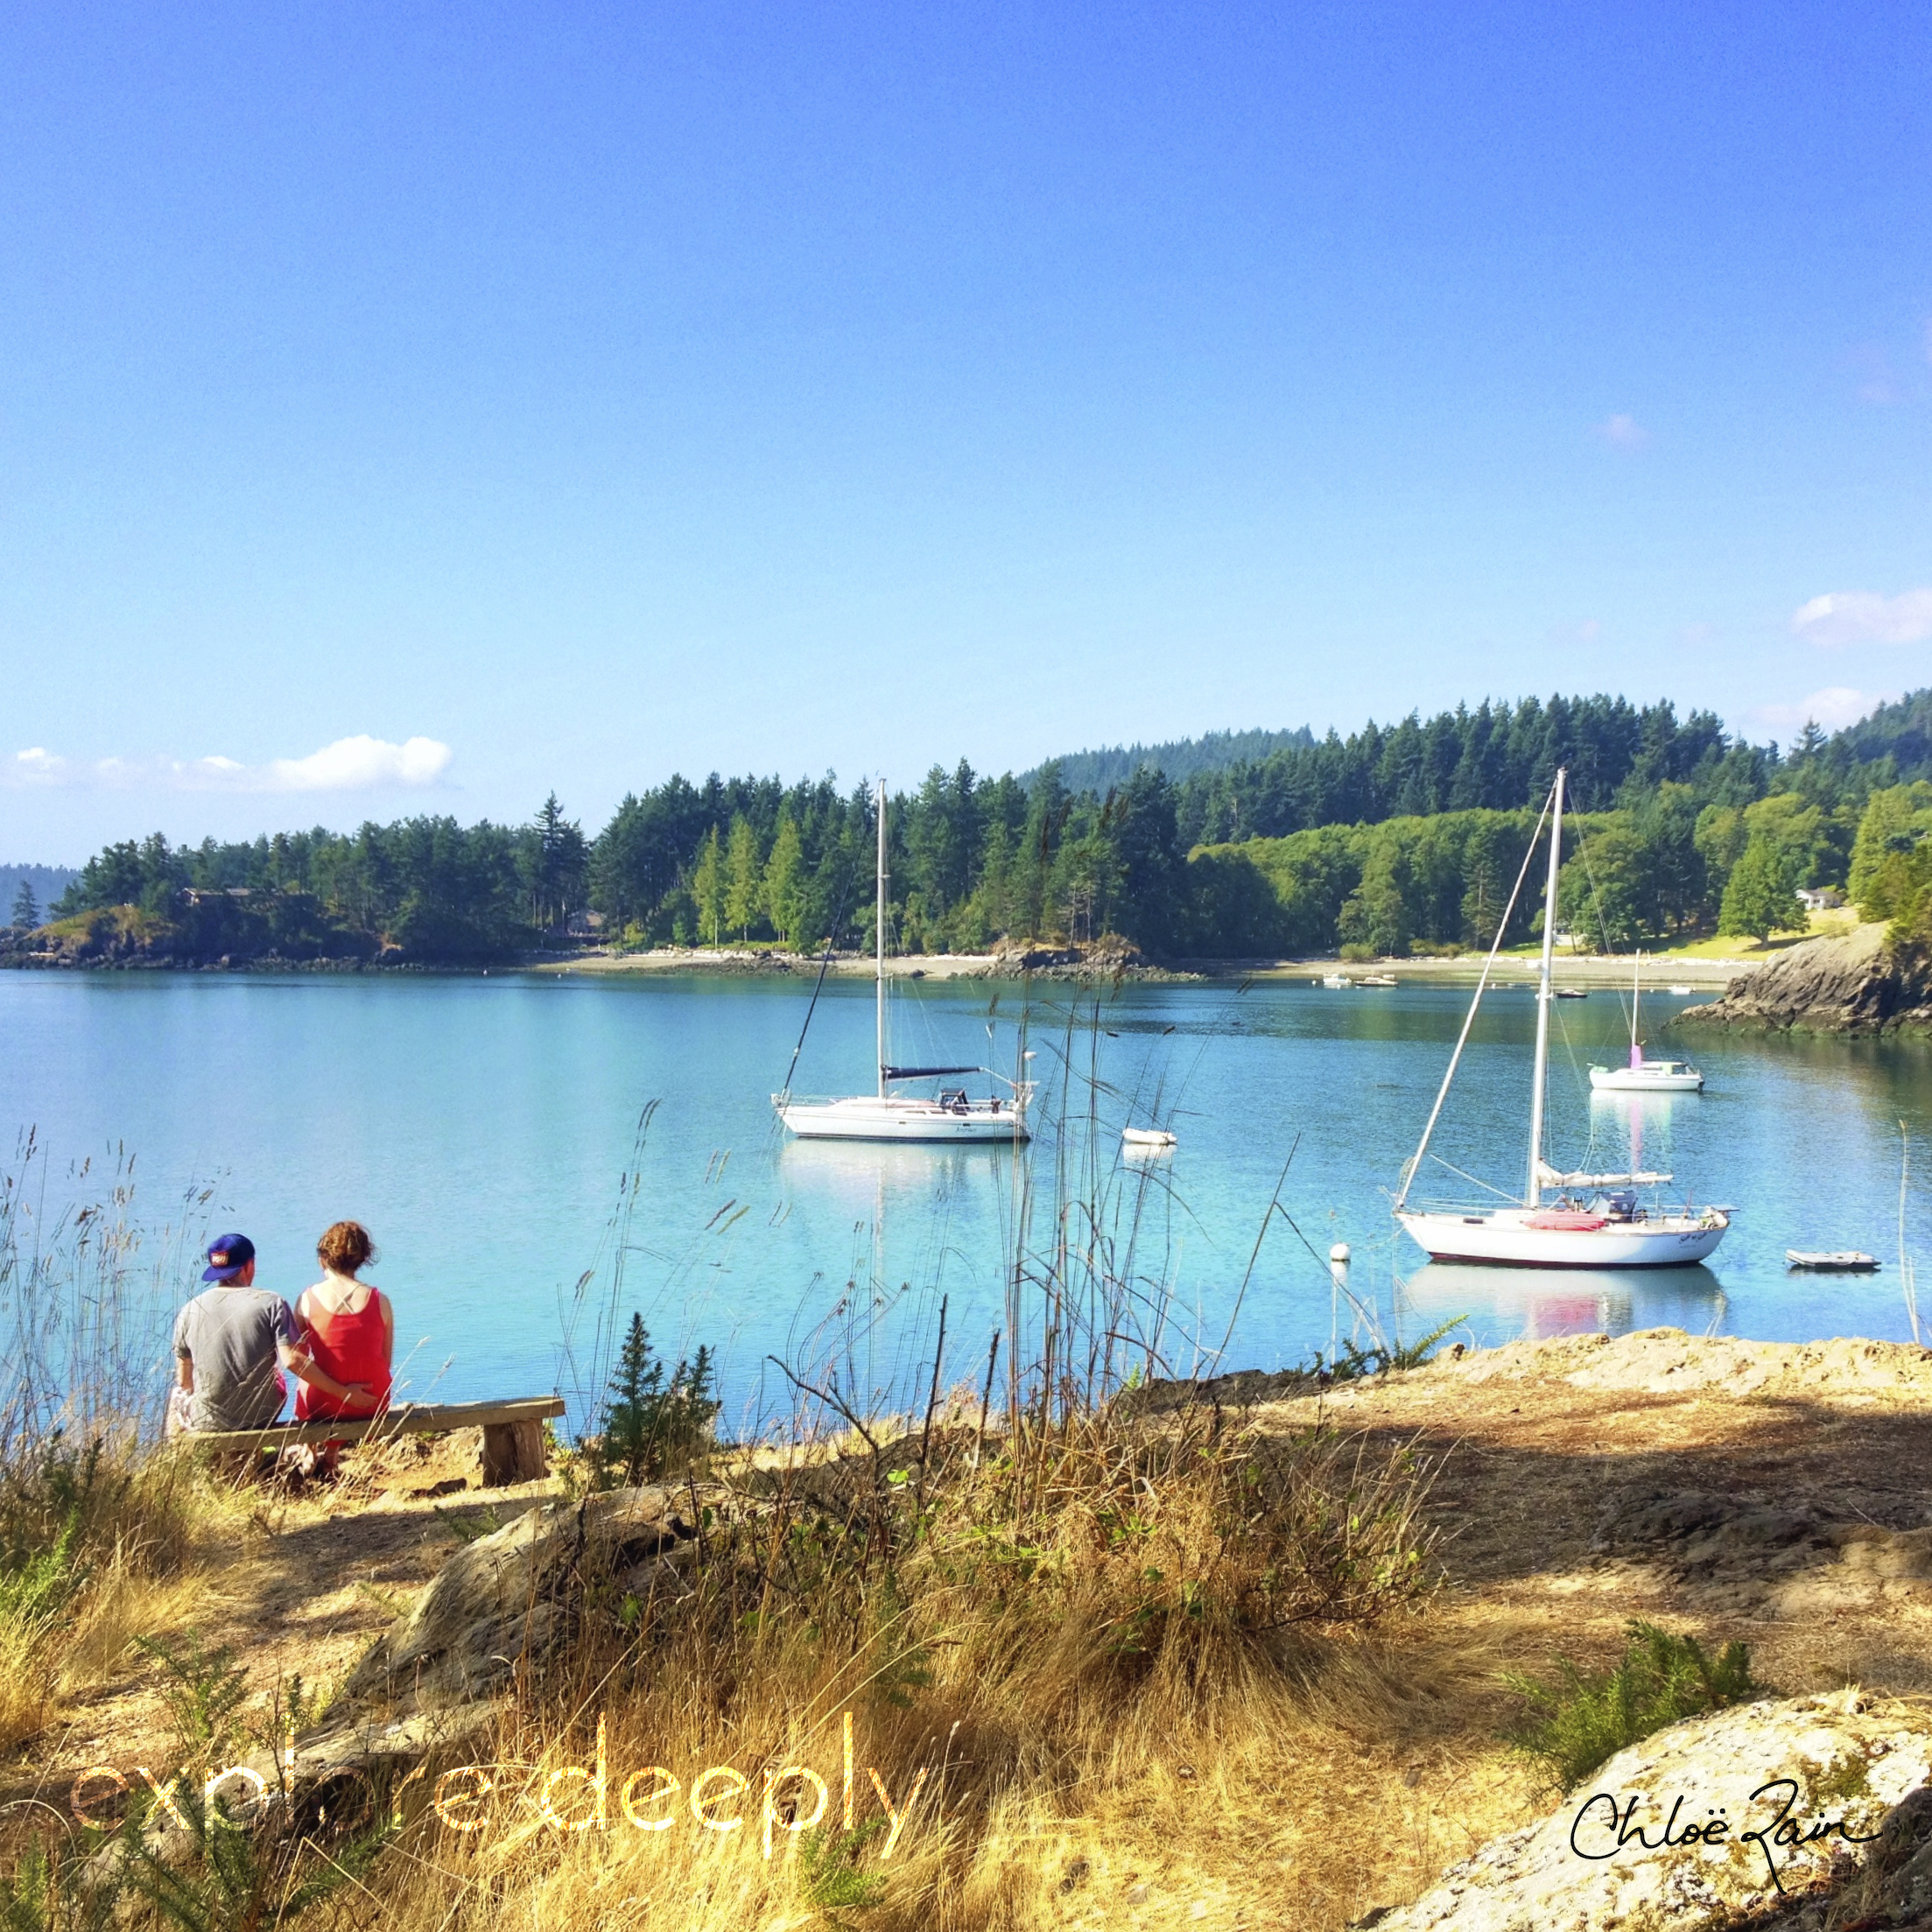 Doe Bay San Juan Islands Washington Explore Deeply